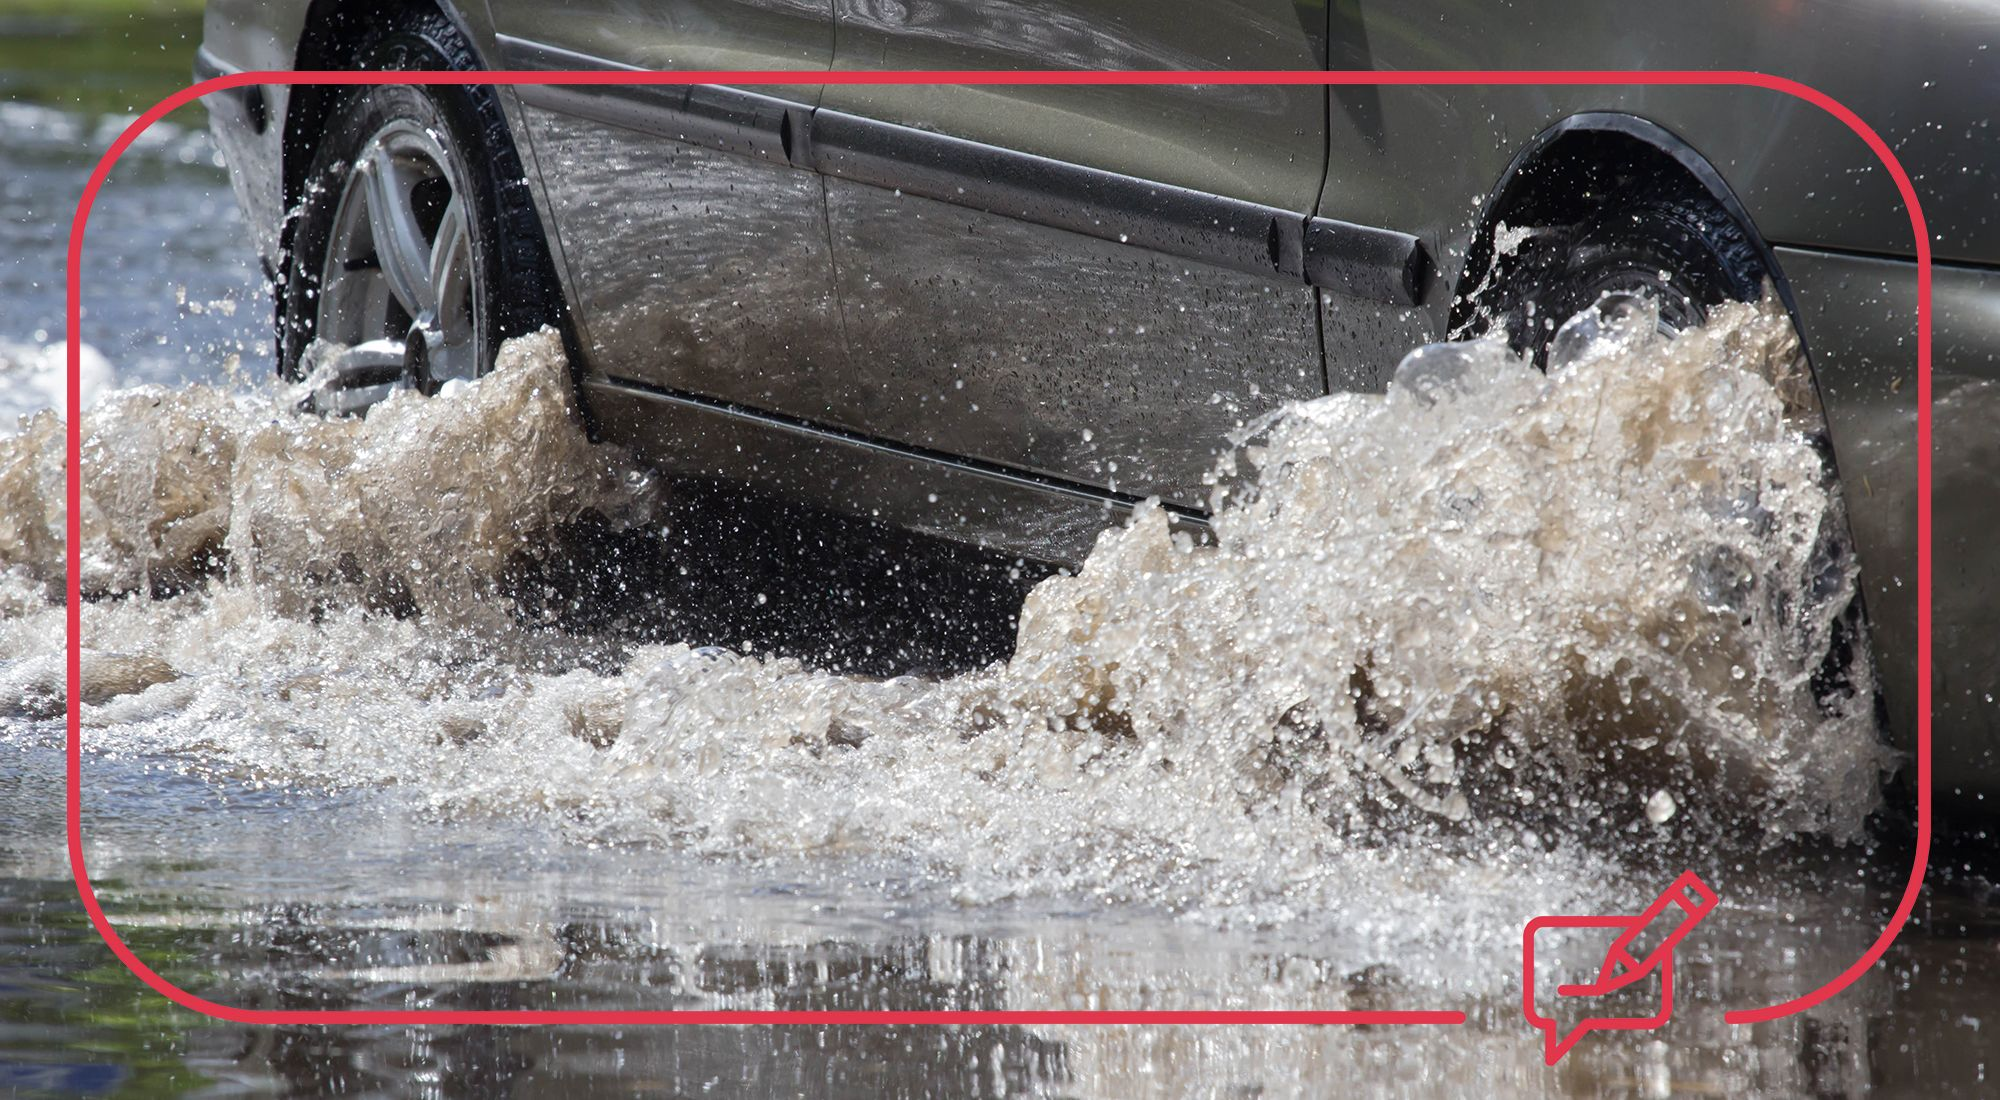 Driving in heavy rain and flood water - the top tips